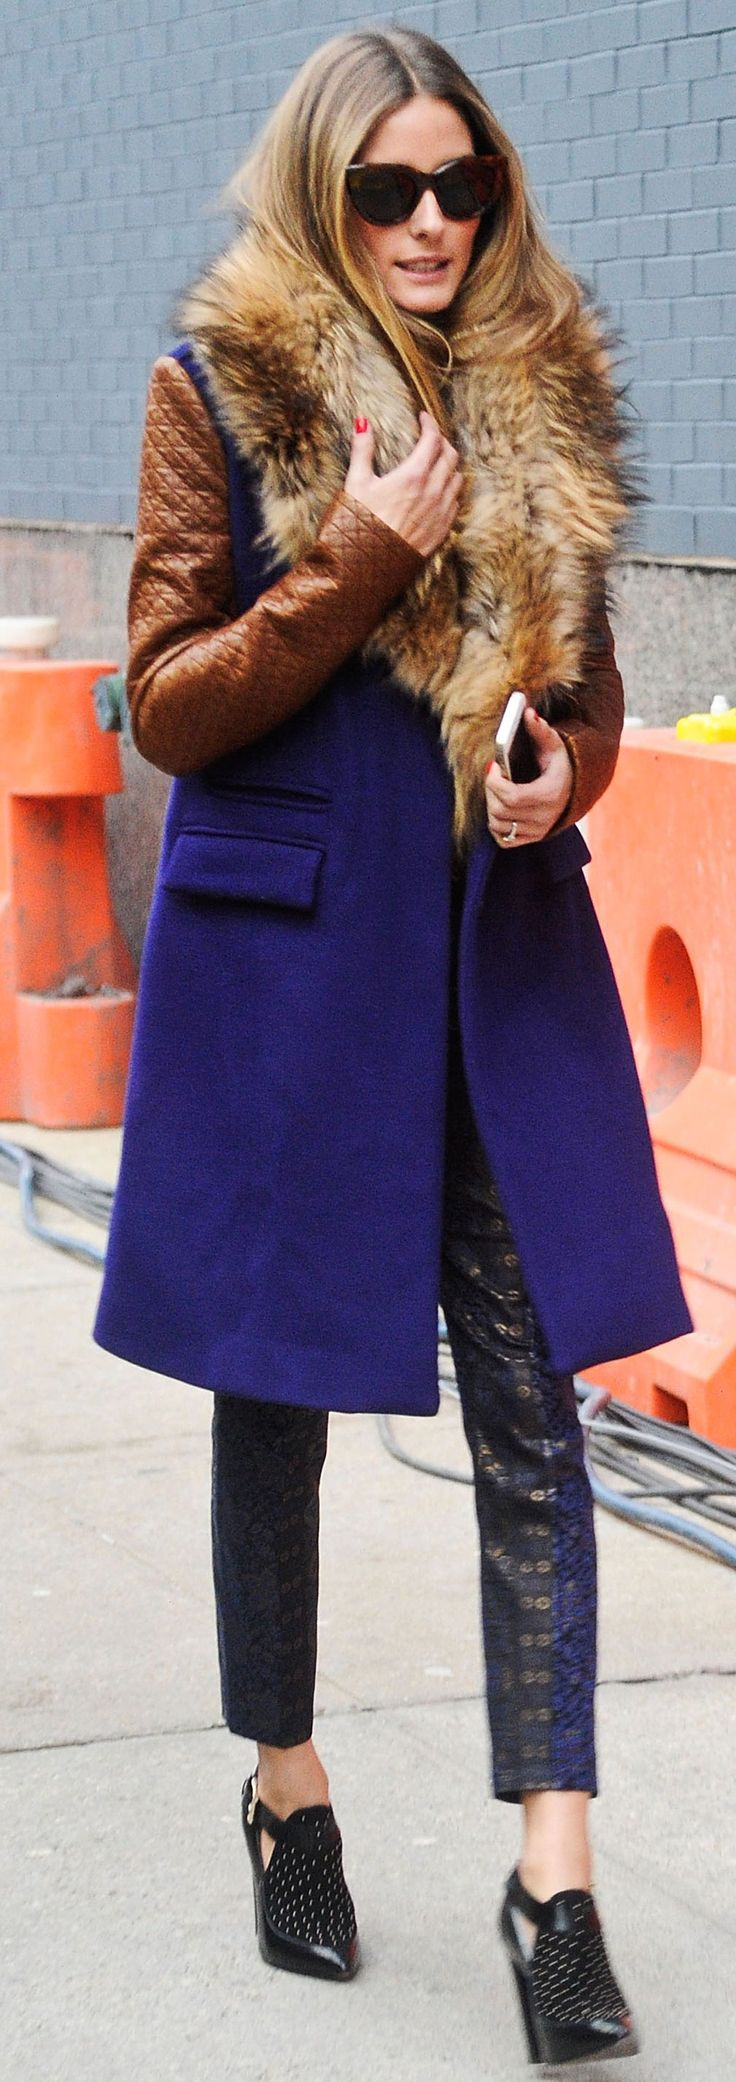 Olivia Palermo's Fashion Week Outfits Could Rival Any Runway #streetstyle #nyfw #lfw